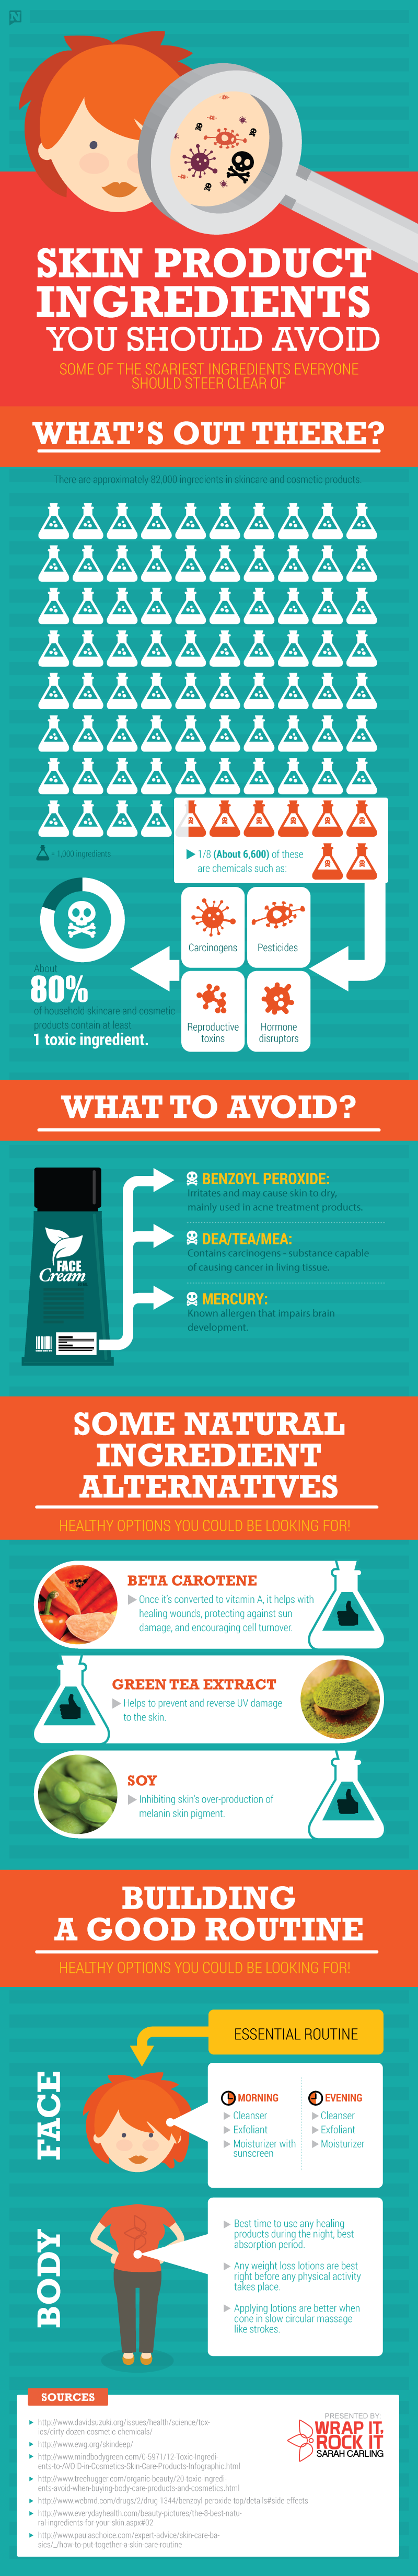 Skin Care Products to Avoid